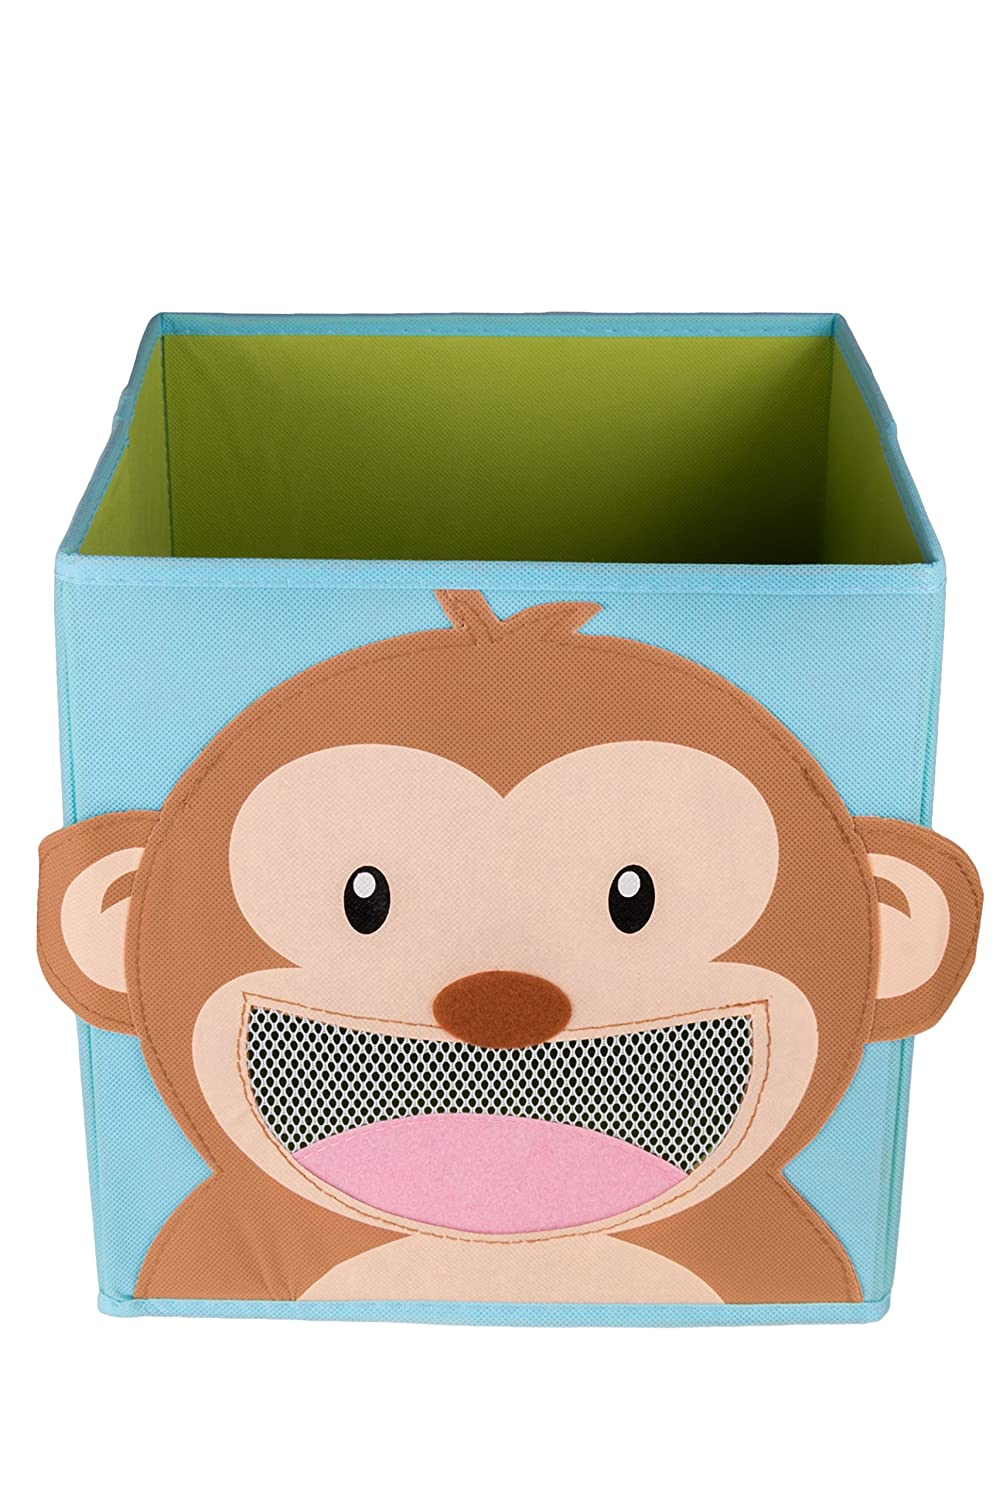 Clever Creations Cute Smiling Monkey Collapsible Toy Storage Organizer Toy Box Folding Storage Cube for Kids Bedroom | Perfect Size Storage Cube for Books, Kids Toys, Baby Toys, Baby Clothes